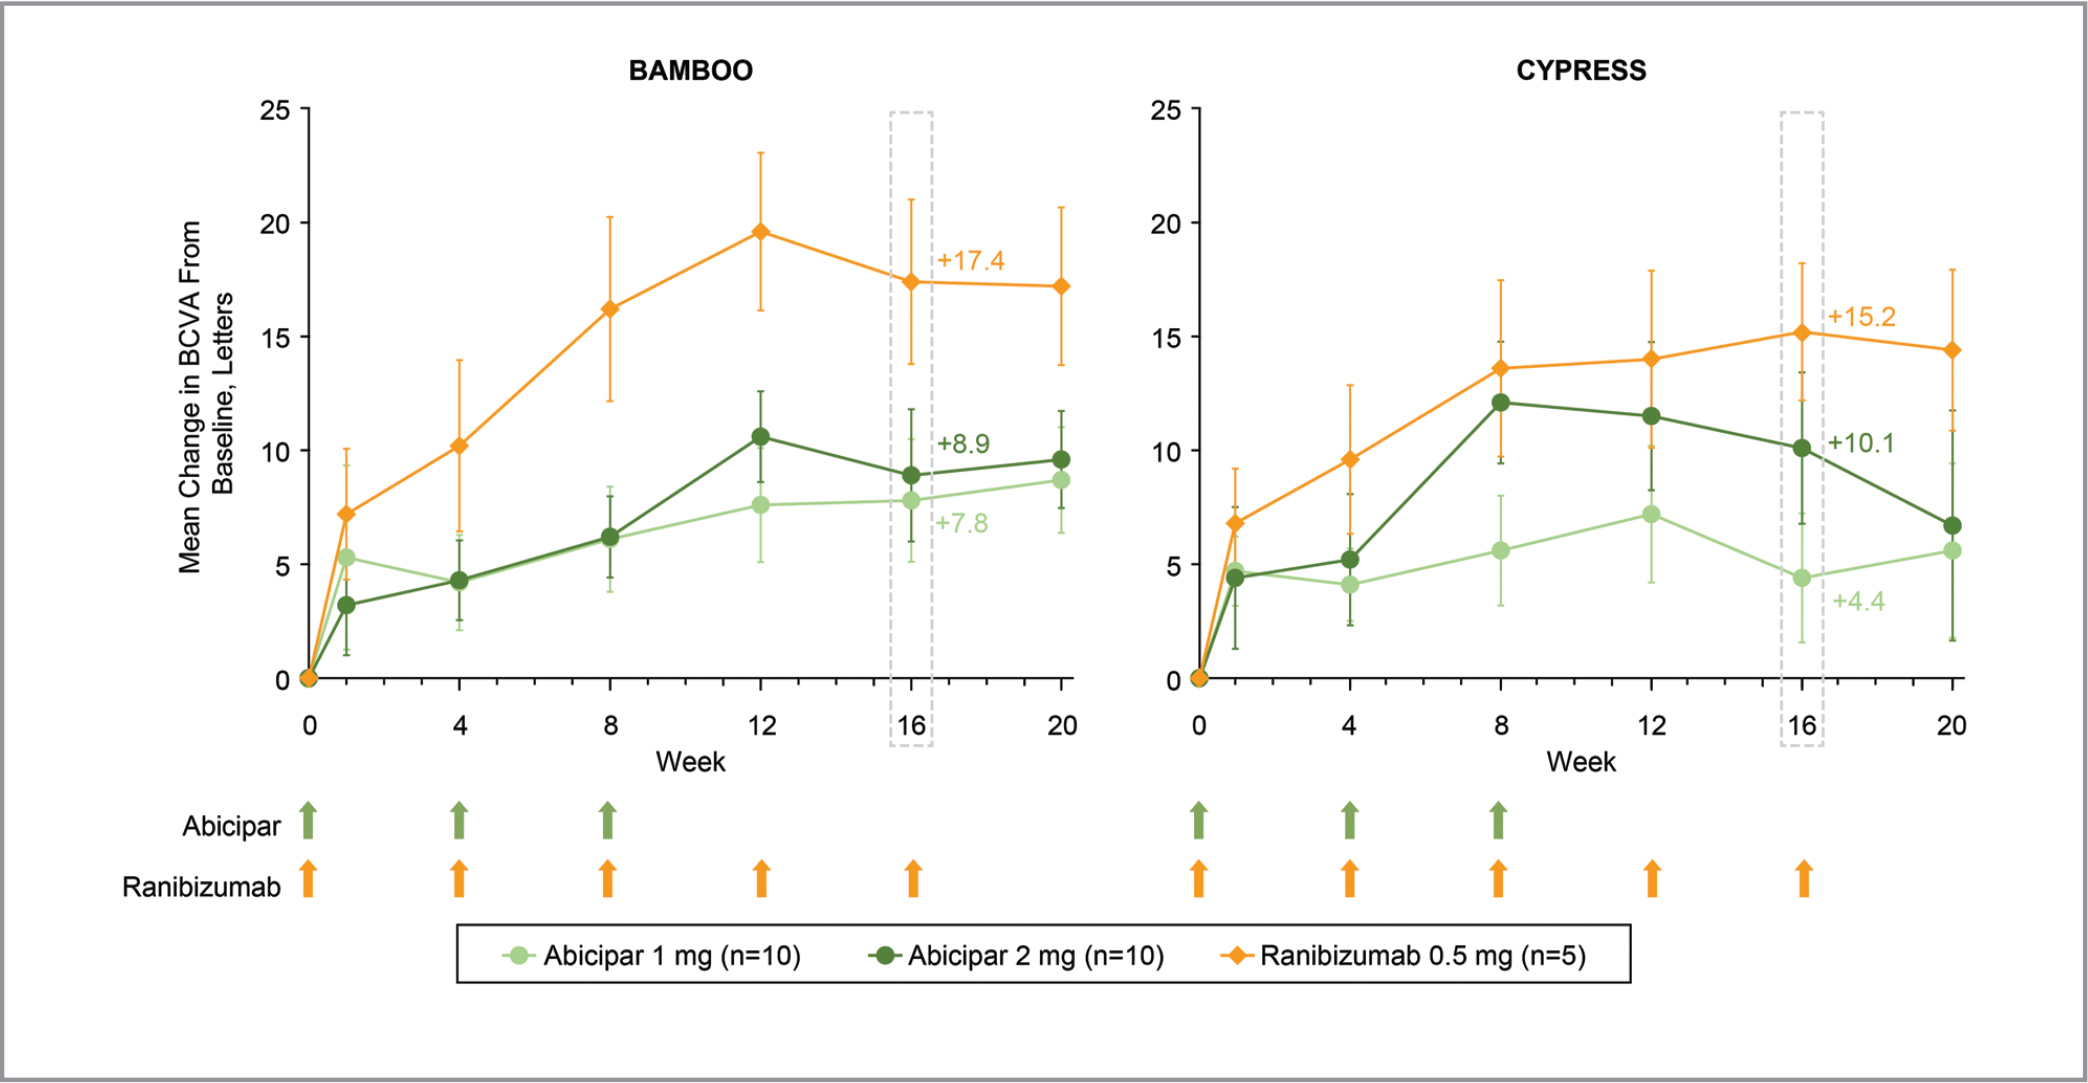 Mean change from baseline in best-corrected visual acuity (BCVA) at each visit in the BAMBOO and CYPRESS studies. The primary endpoint was at week 16. Green and orange arrows indicate treatment with abicipar and ranibizumab, respectively. Missing data were imputed with the last observation carried forward. Errors bars indicate standard error of the mean.